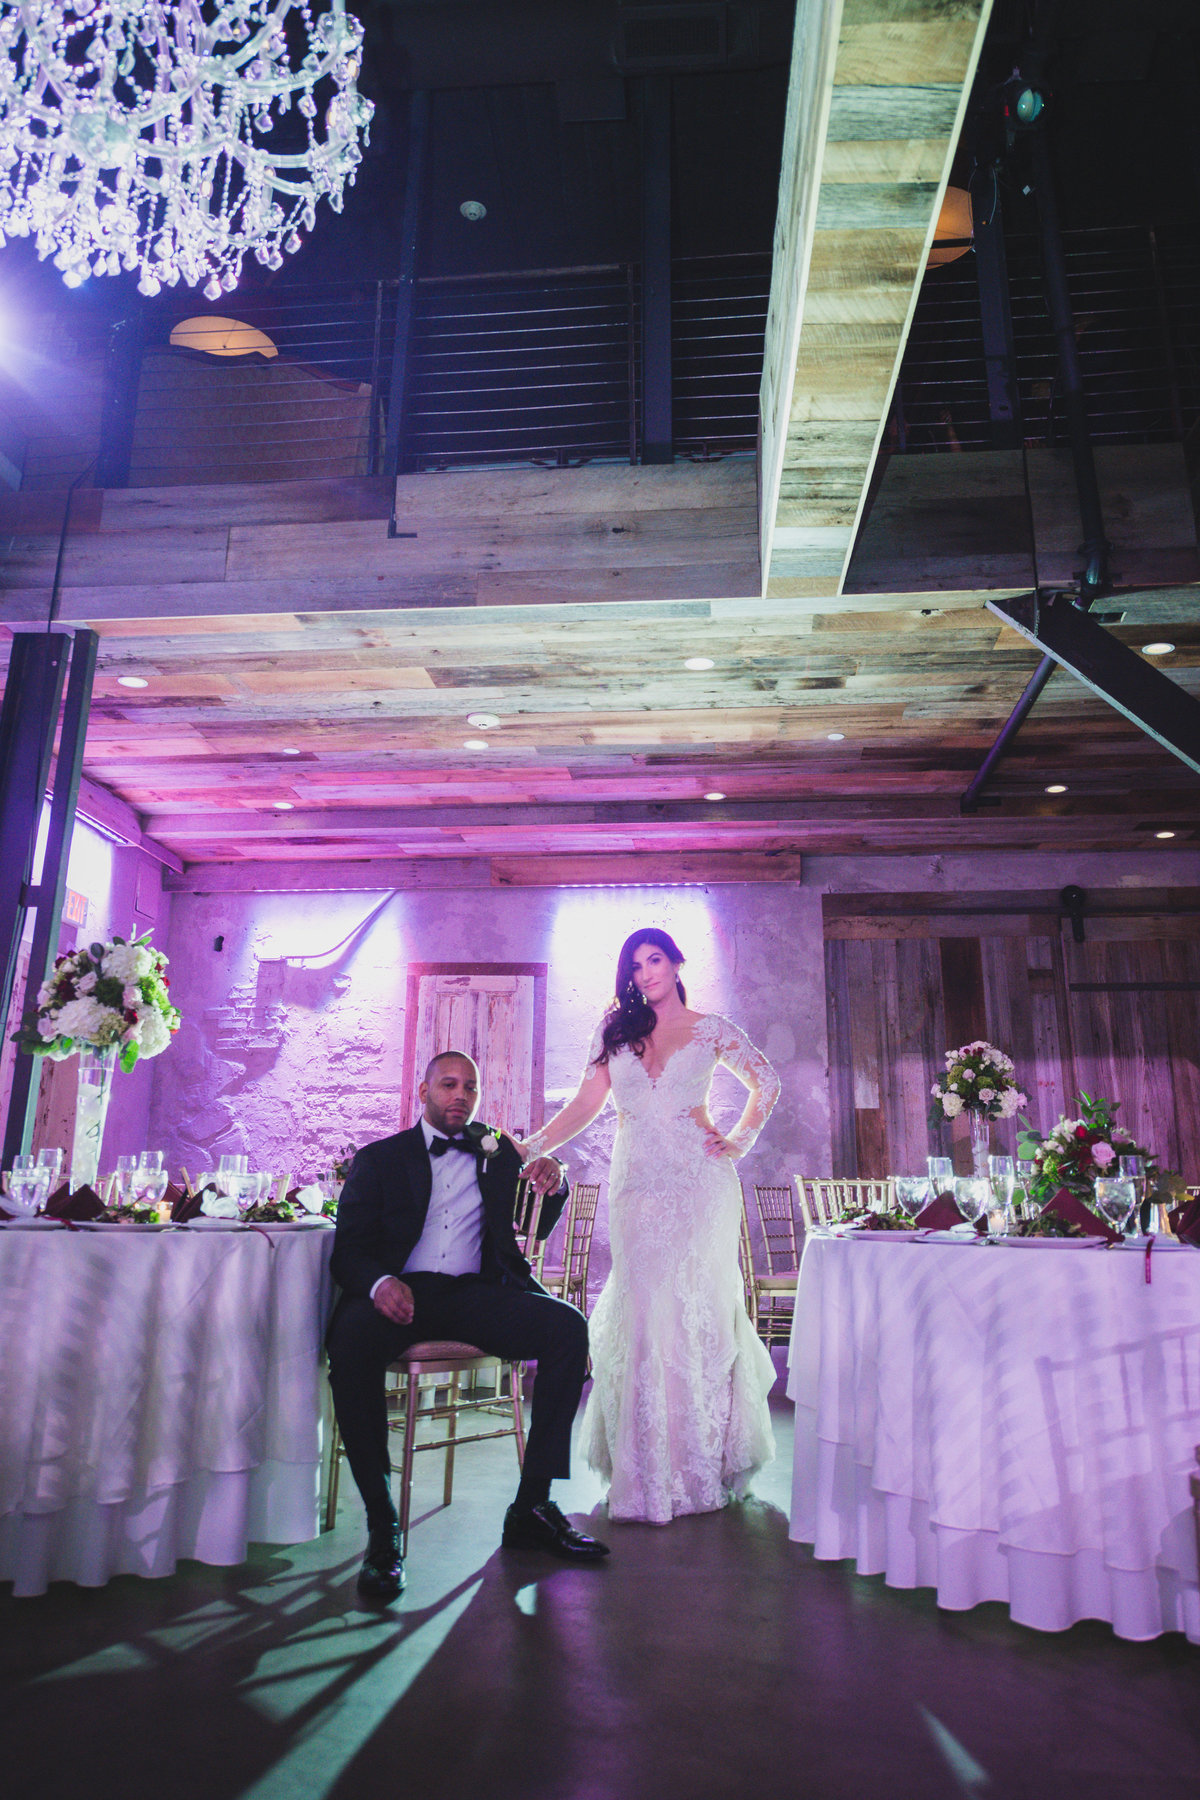 wedding photo of groom sitting with bride standing holding his shoulder in wedding reception at The Loft by Bridgeview